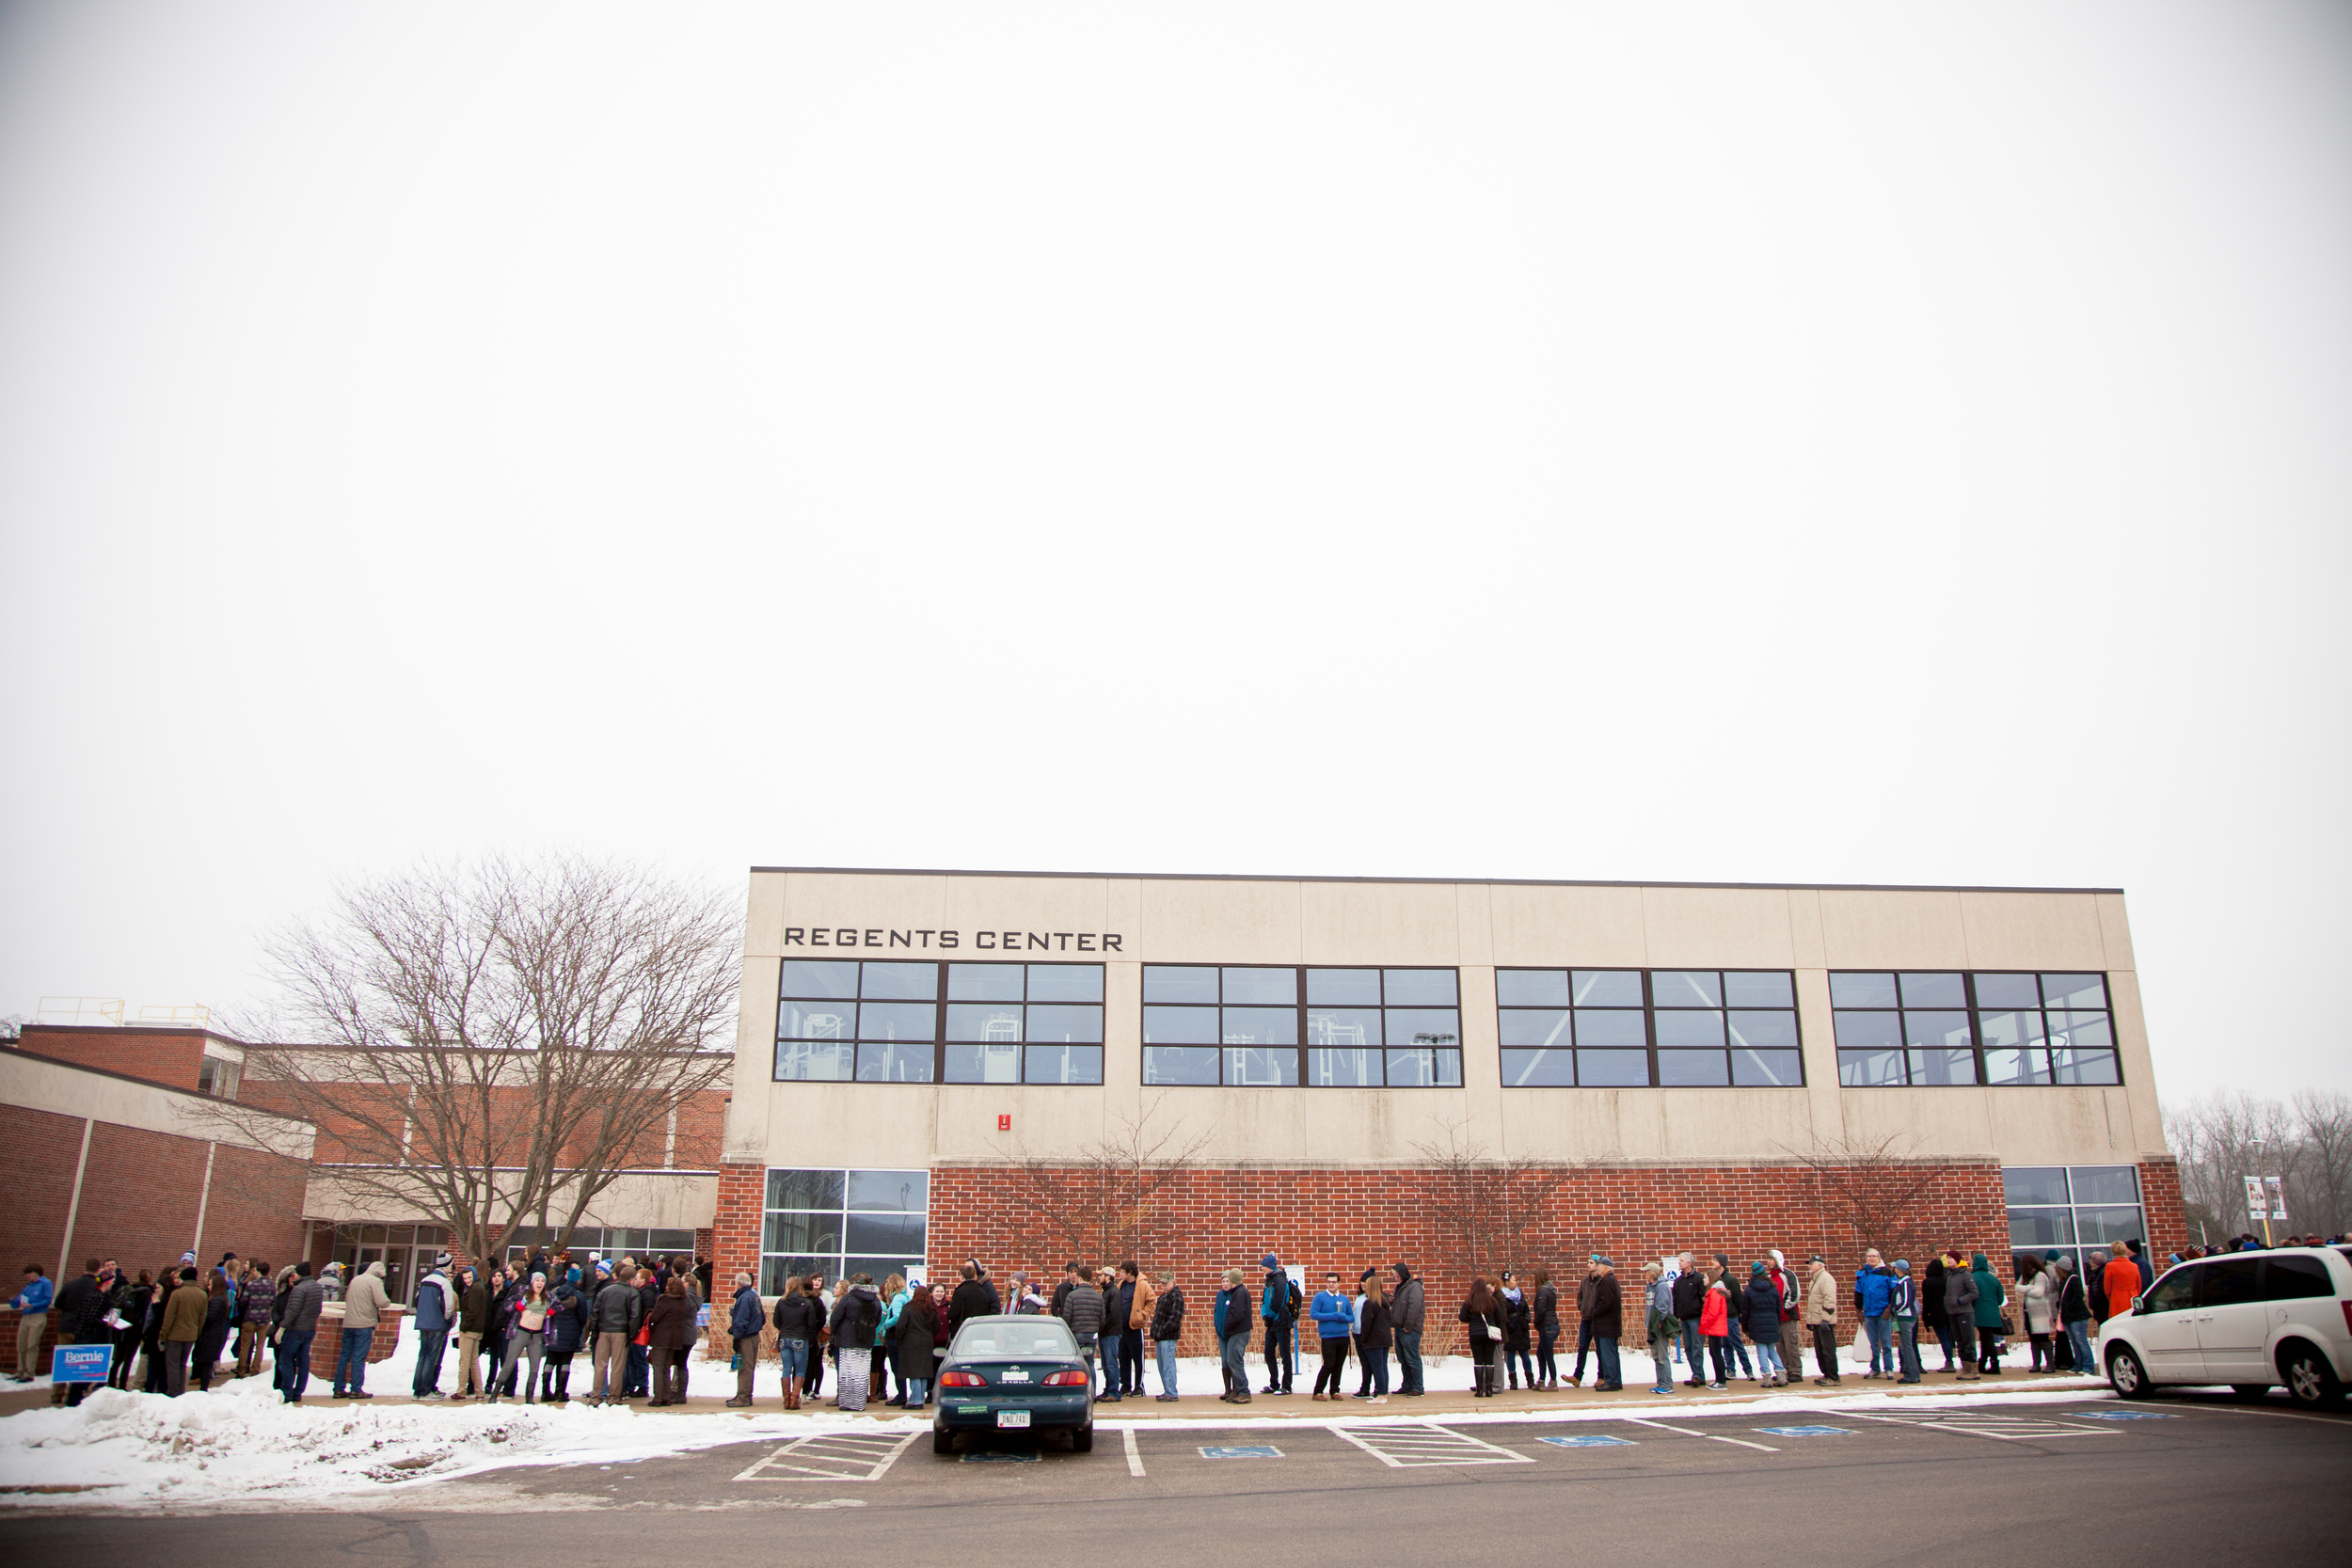 The line to get in to the event started early in the morning and persisted for hours. Fortunately it was a mild winter day by Iowa standards.